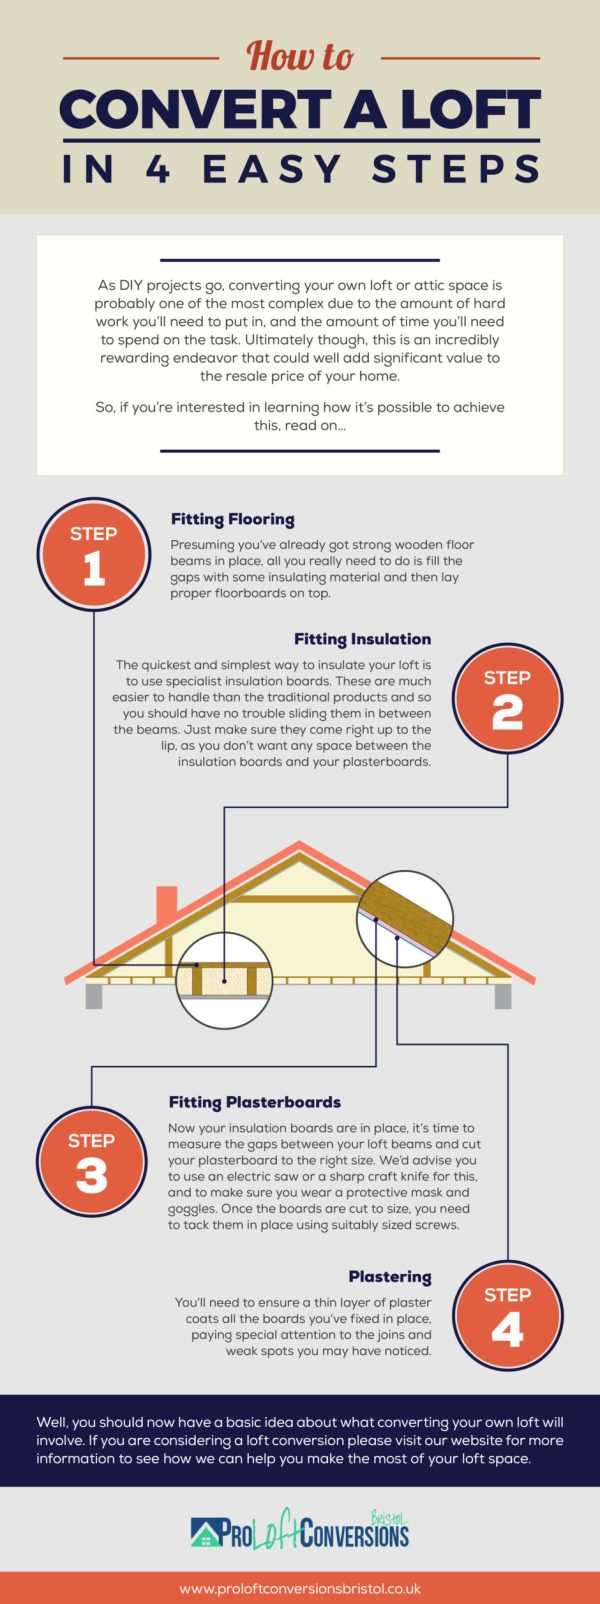 How_to_Convert_a_Loft_in_4_Easy_Steps-940x2513